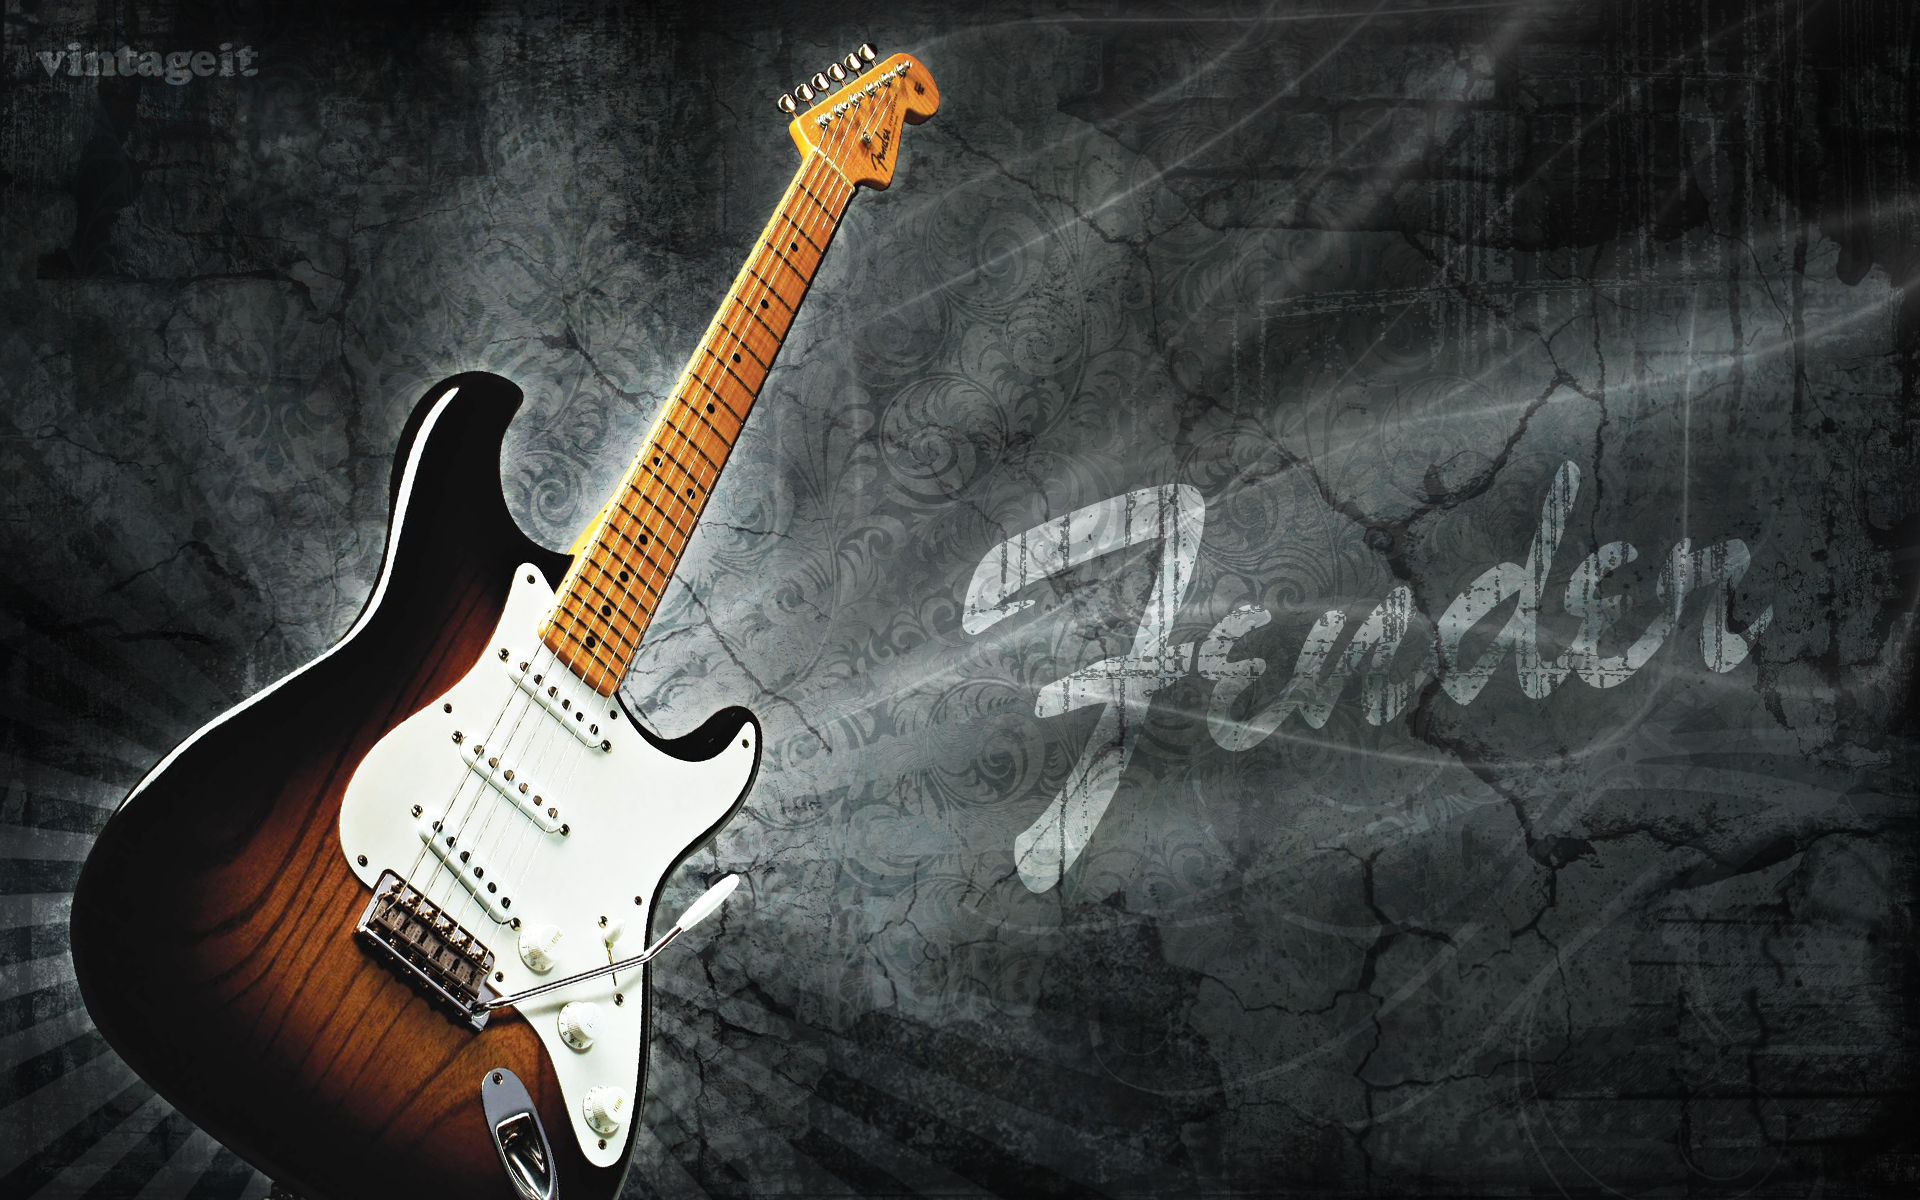 fender stratocaster wallpaper hd wallpapersafari